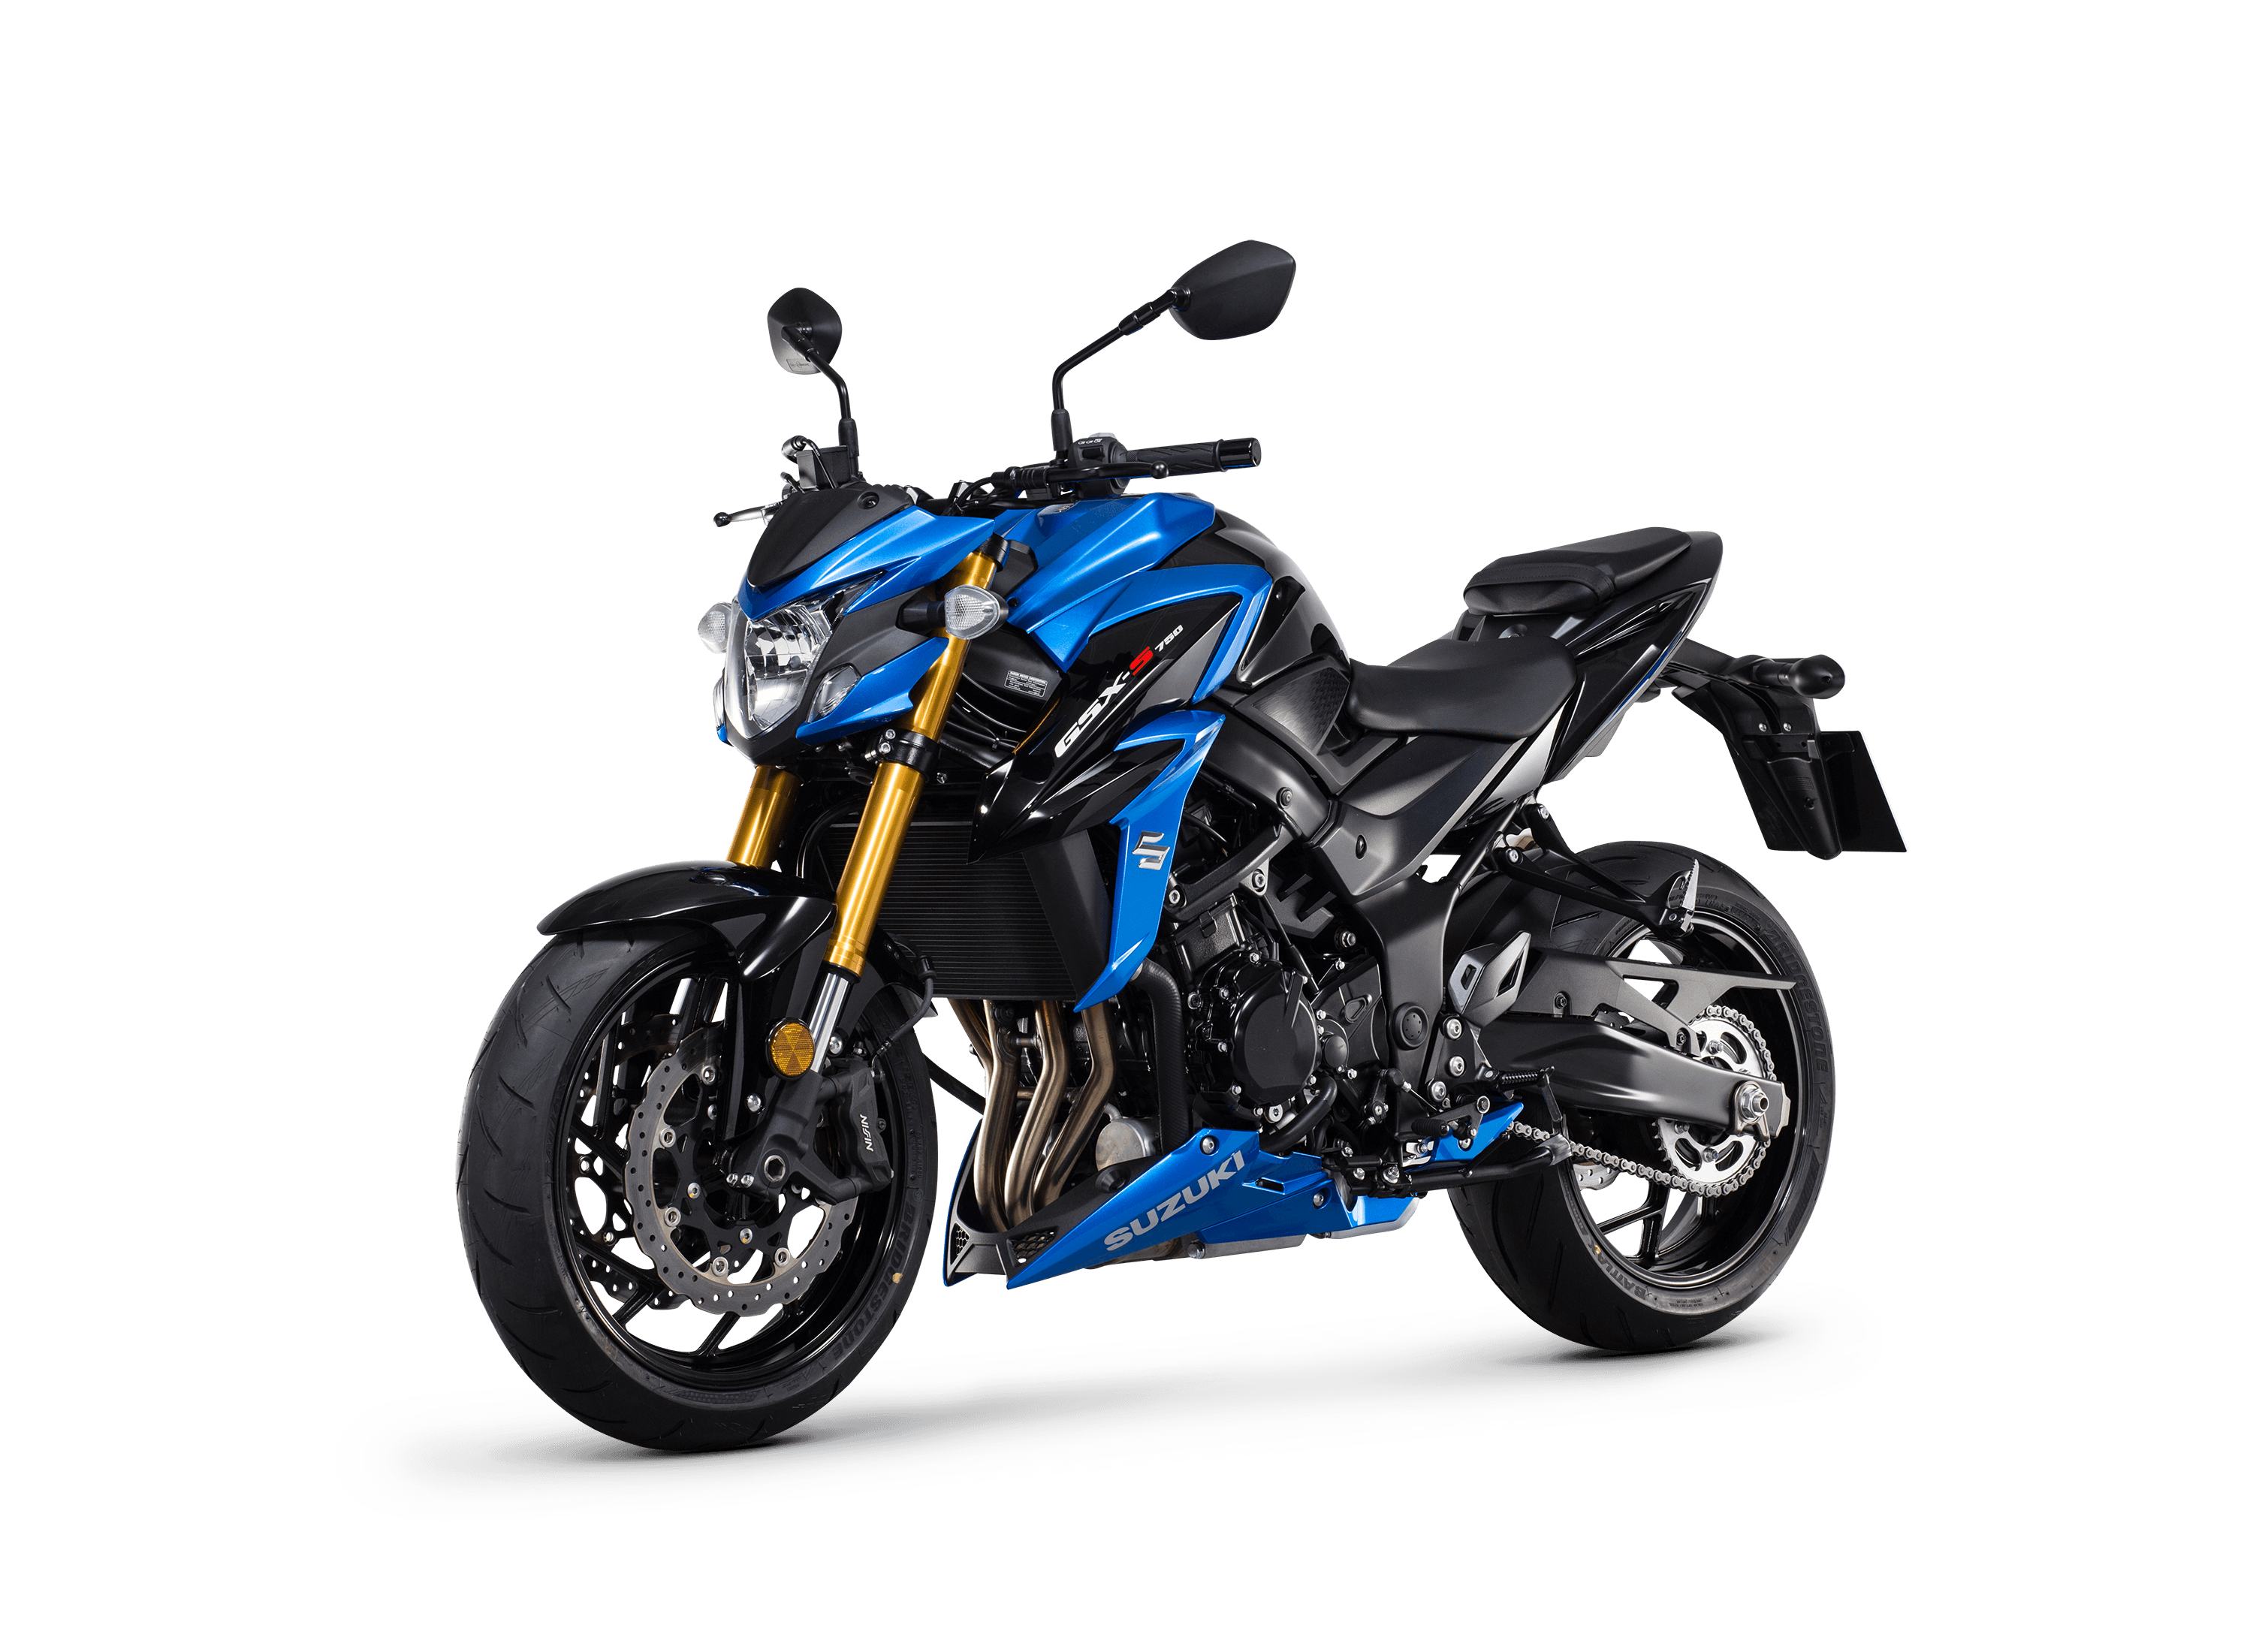 2018 suzuki gsx s750. plain s750 gsxs750 a true apex predator hear the wild induction roar strike your  soul feel genuine gsxr power stir spirit own of every corner to 2018 suzuki gsx s750